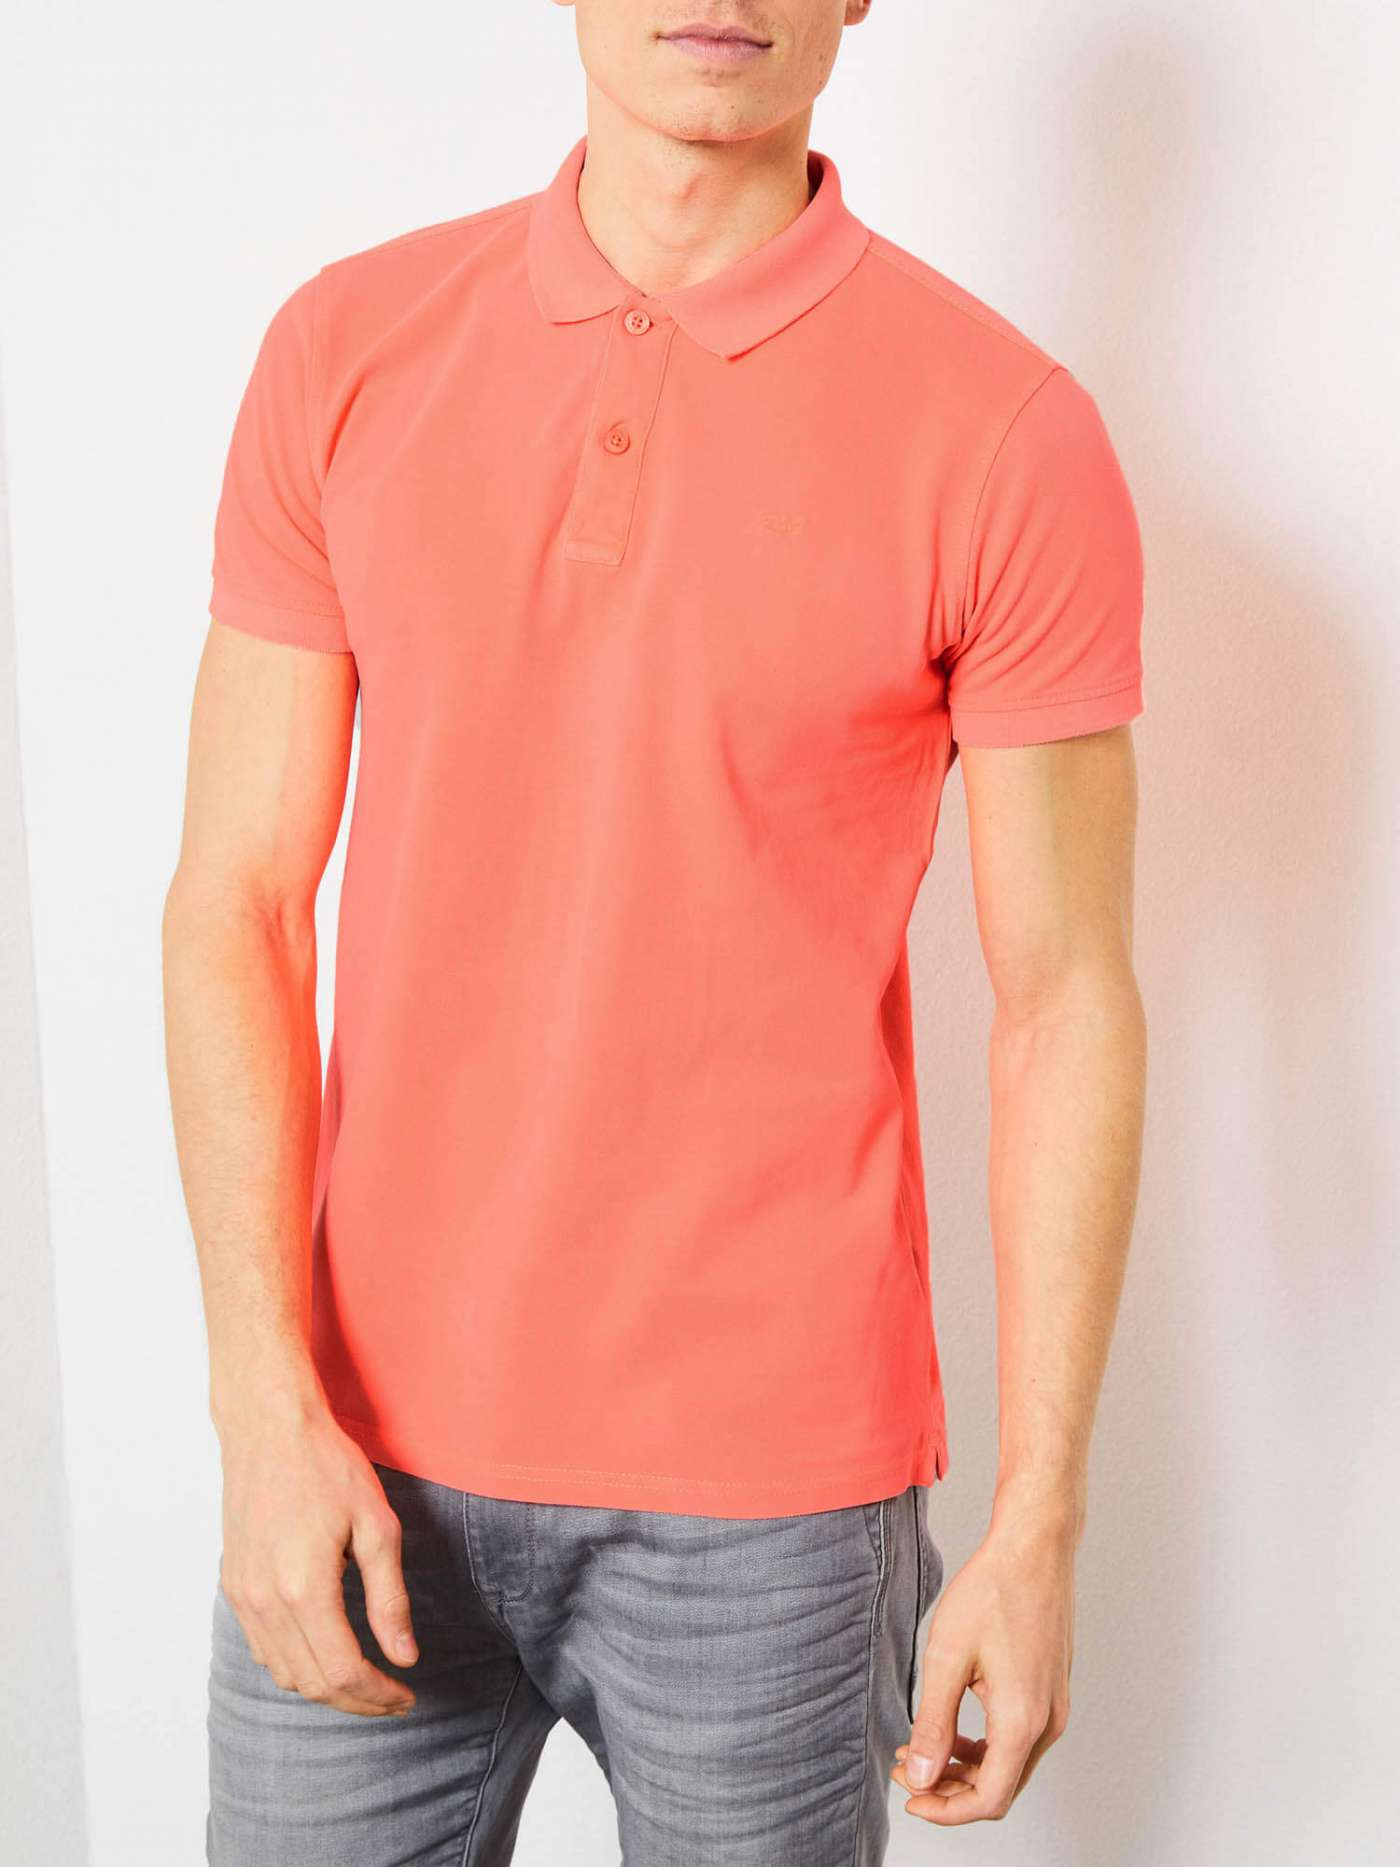 Colourful polo shirt